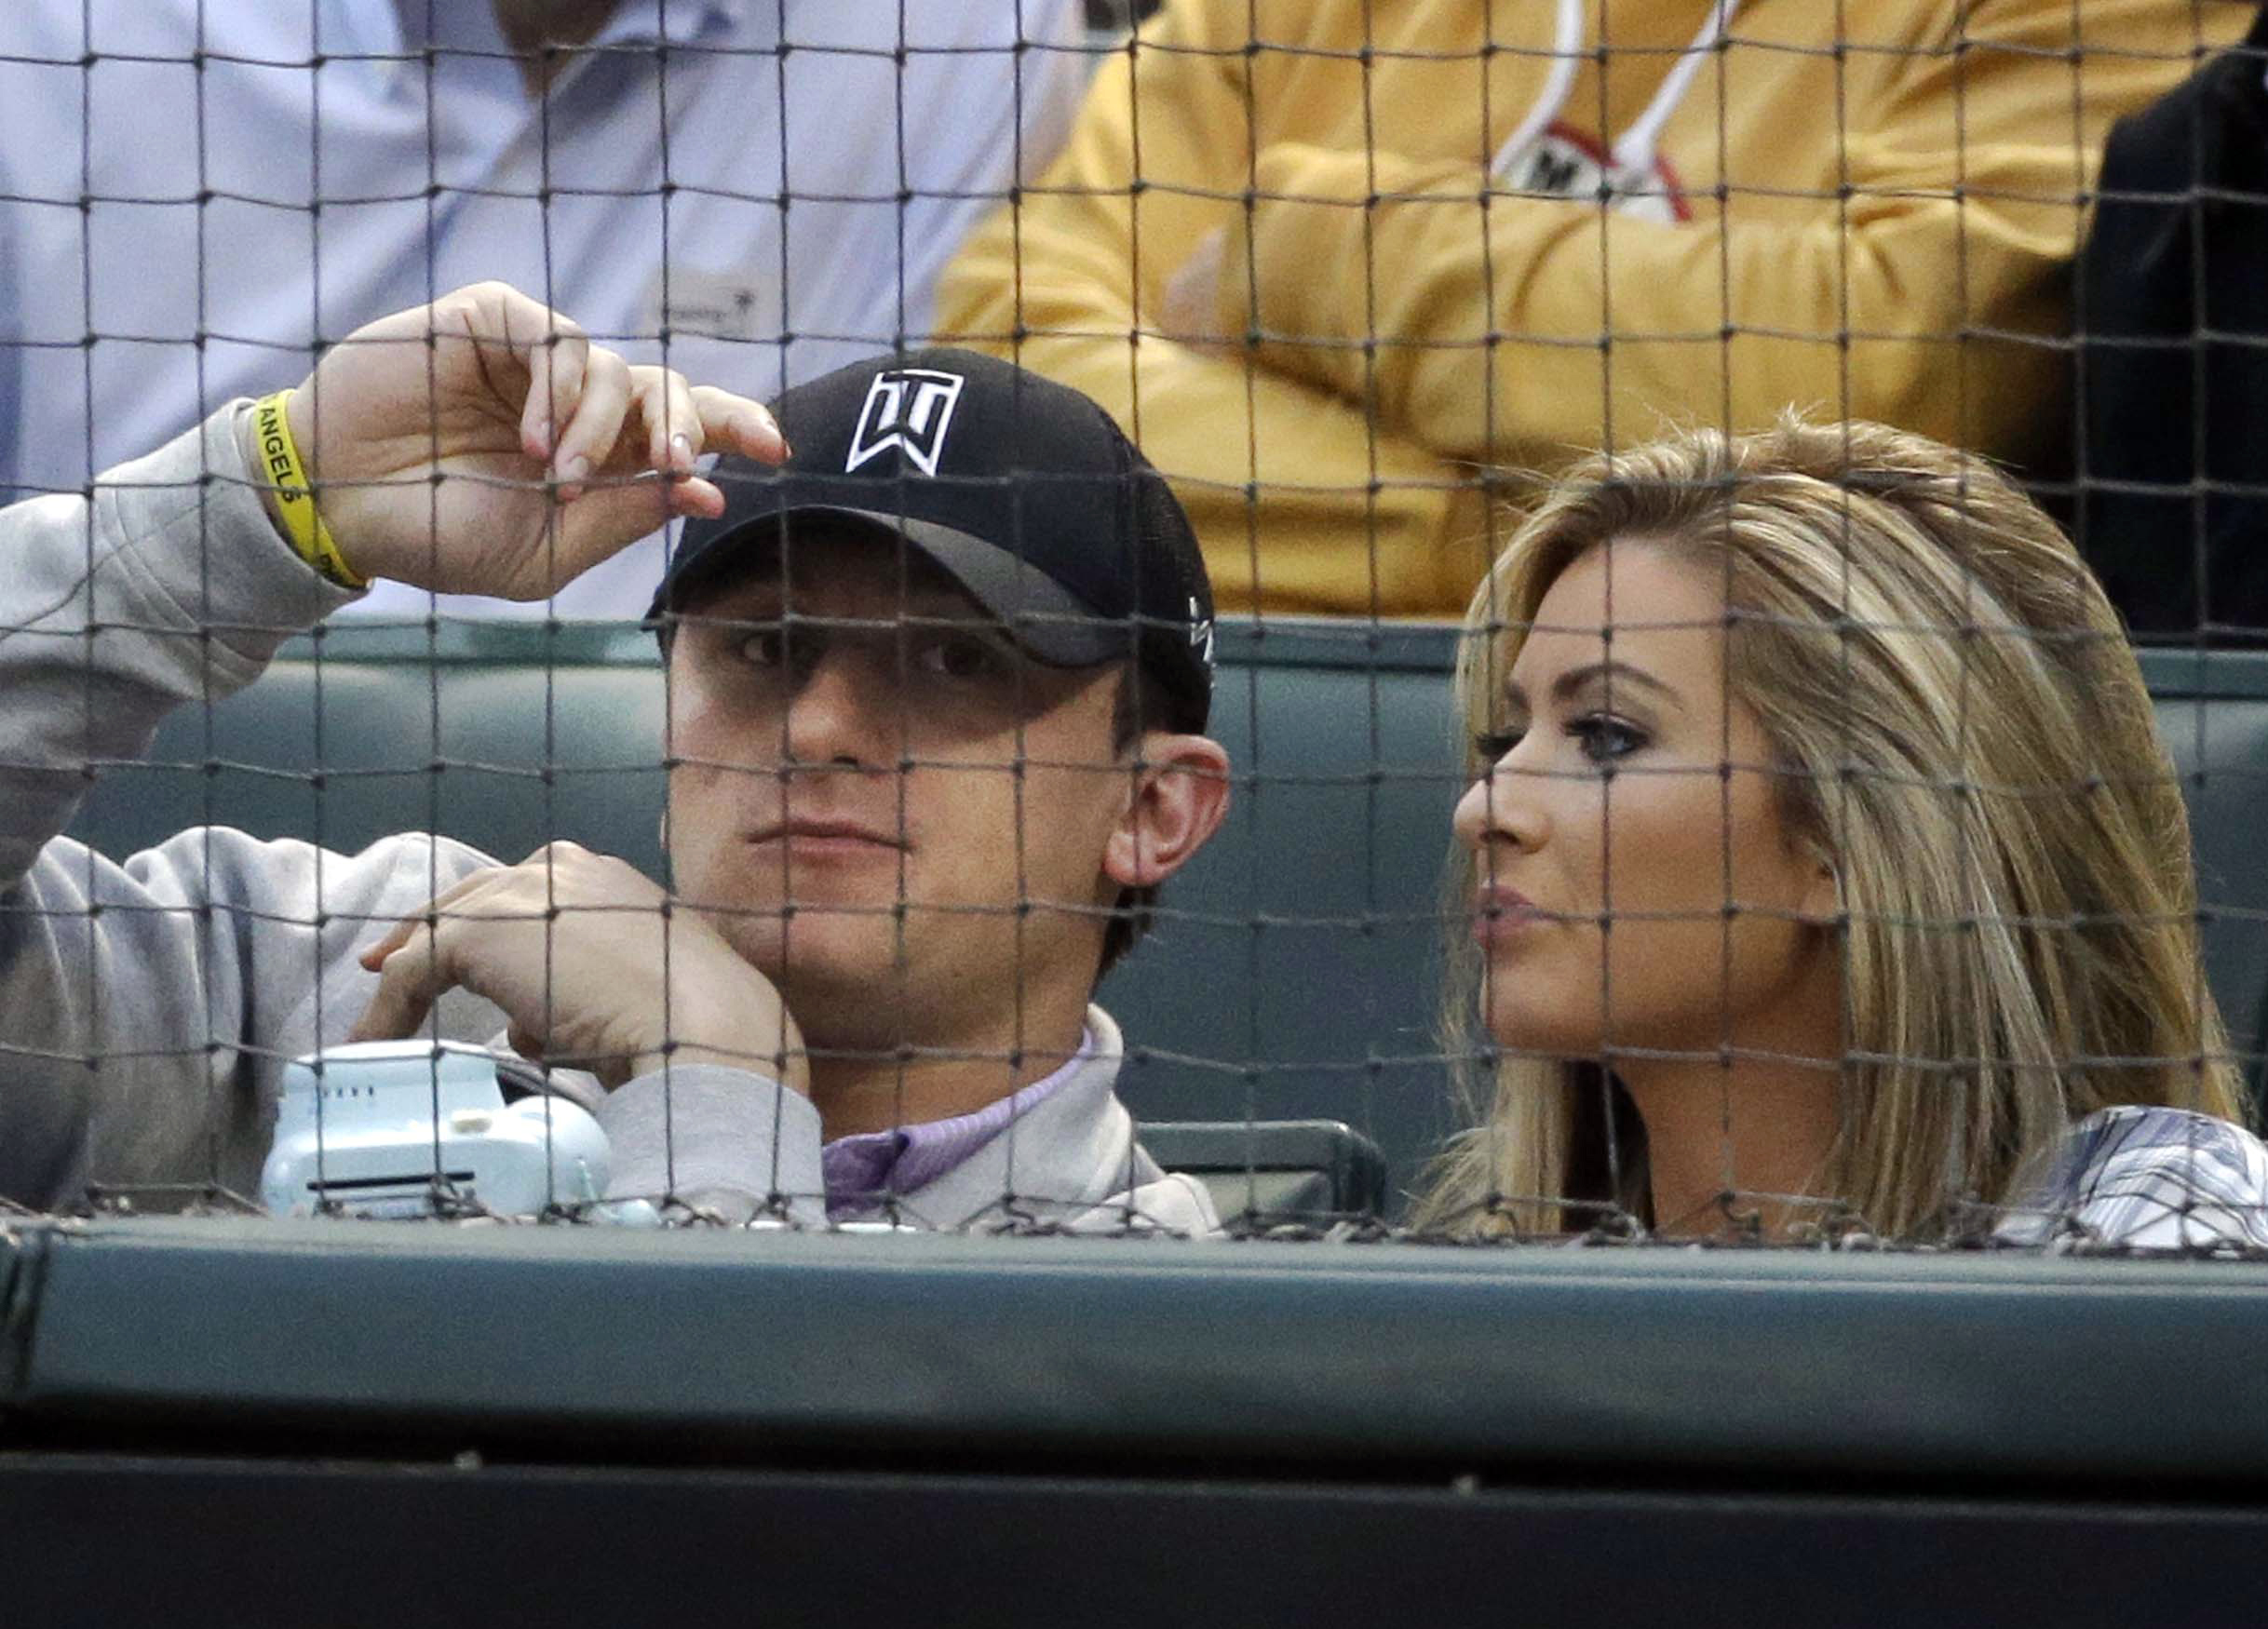 FILE - In this April 14, 2015, file photo, Cleveland Browns quarterback Johnny Manziel, left, sits with Colleen Crowley during a baseball game between the Los Angeles Angels and the Texas Rangers in Arlington, Texas. Johnny Manziel's attorney says prosecu